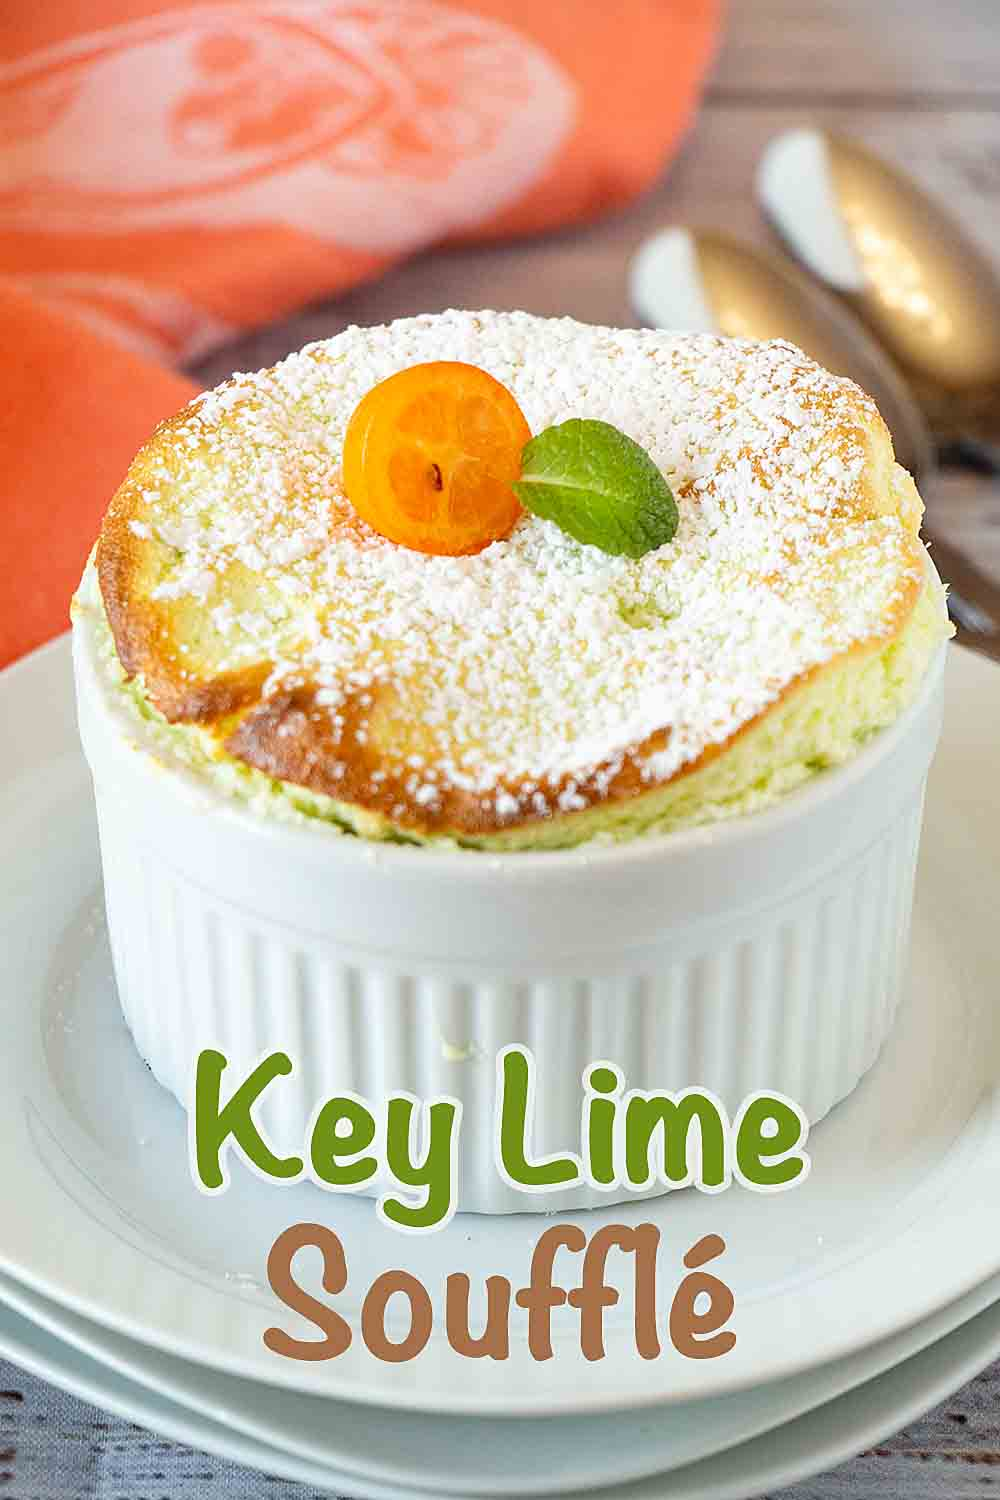 Light, airy, tart and bright, this Key Lime Soufflé is a fun and special dessert that is perfect for spring. Or any time of the year.